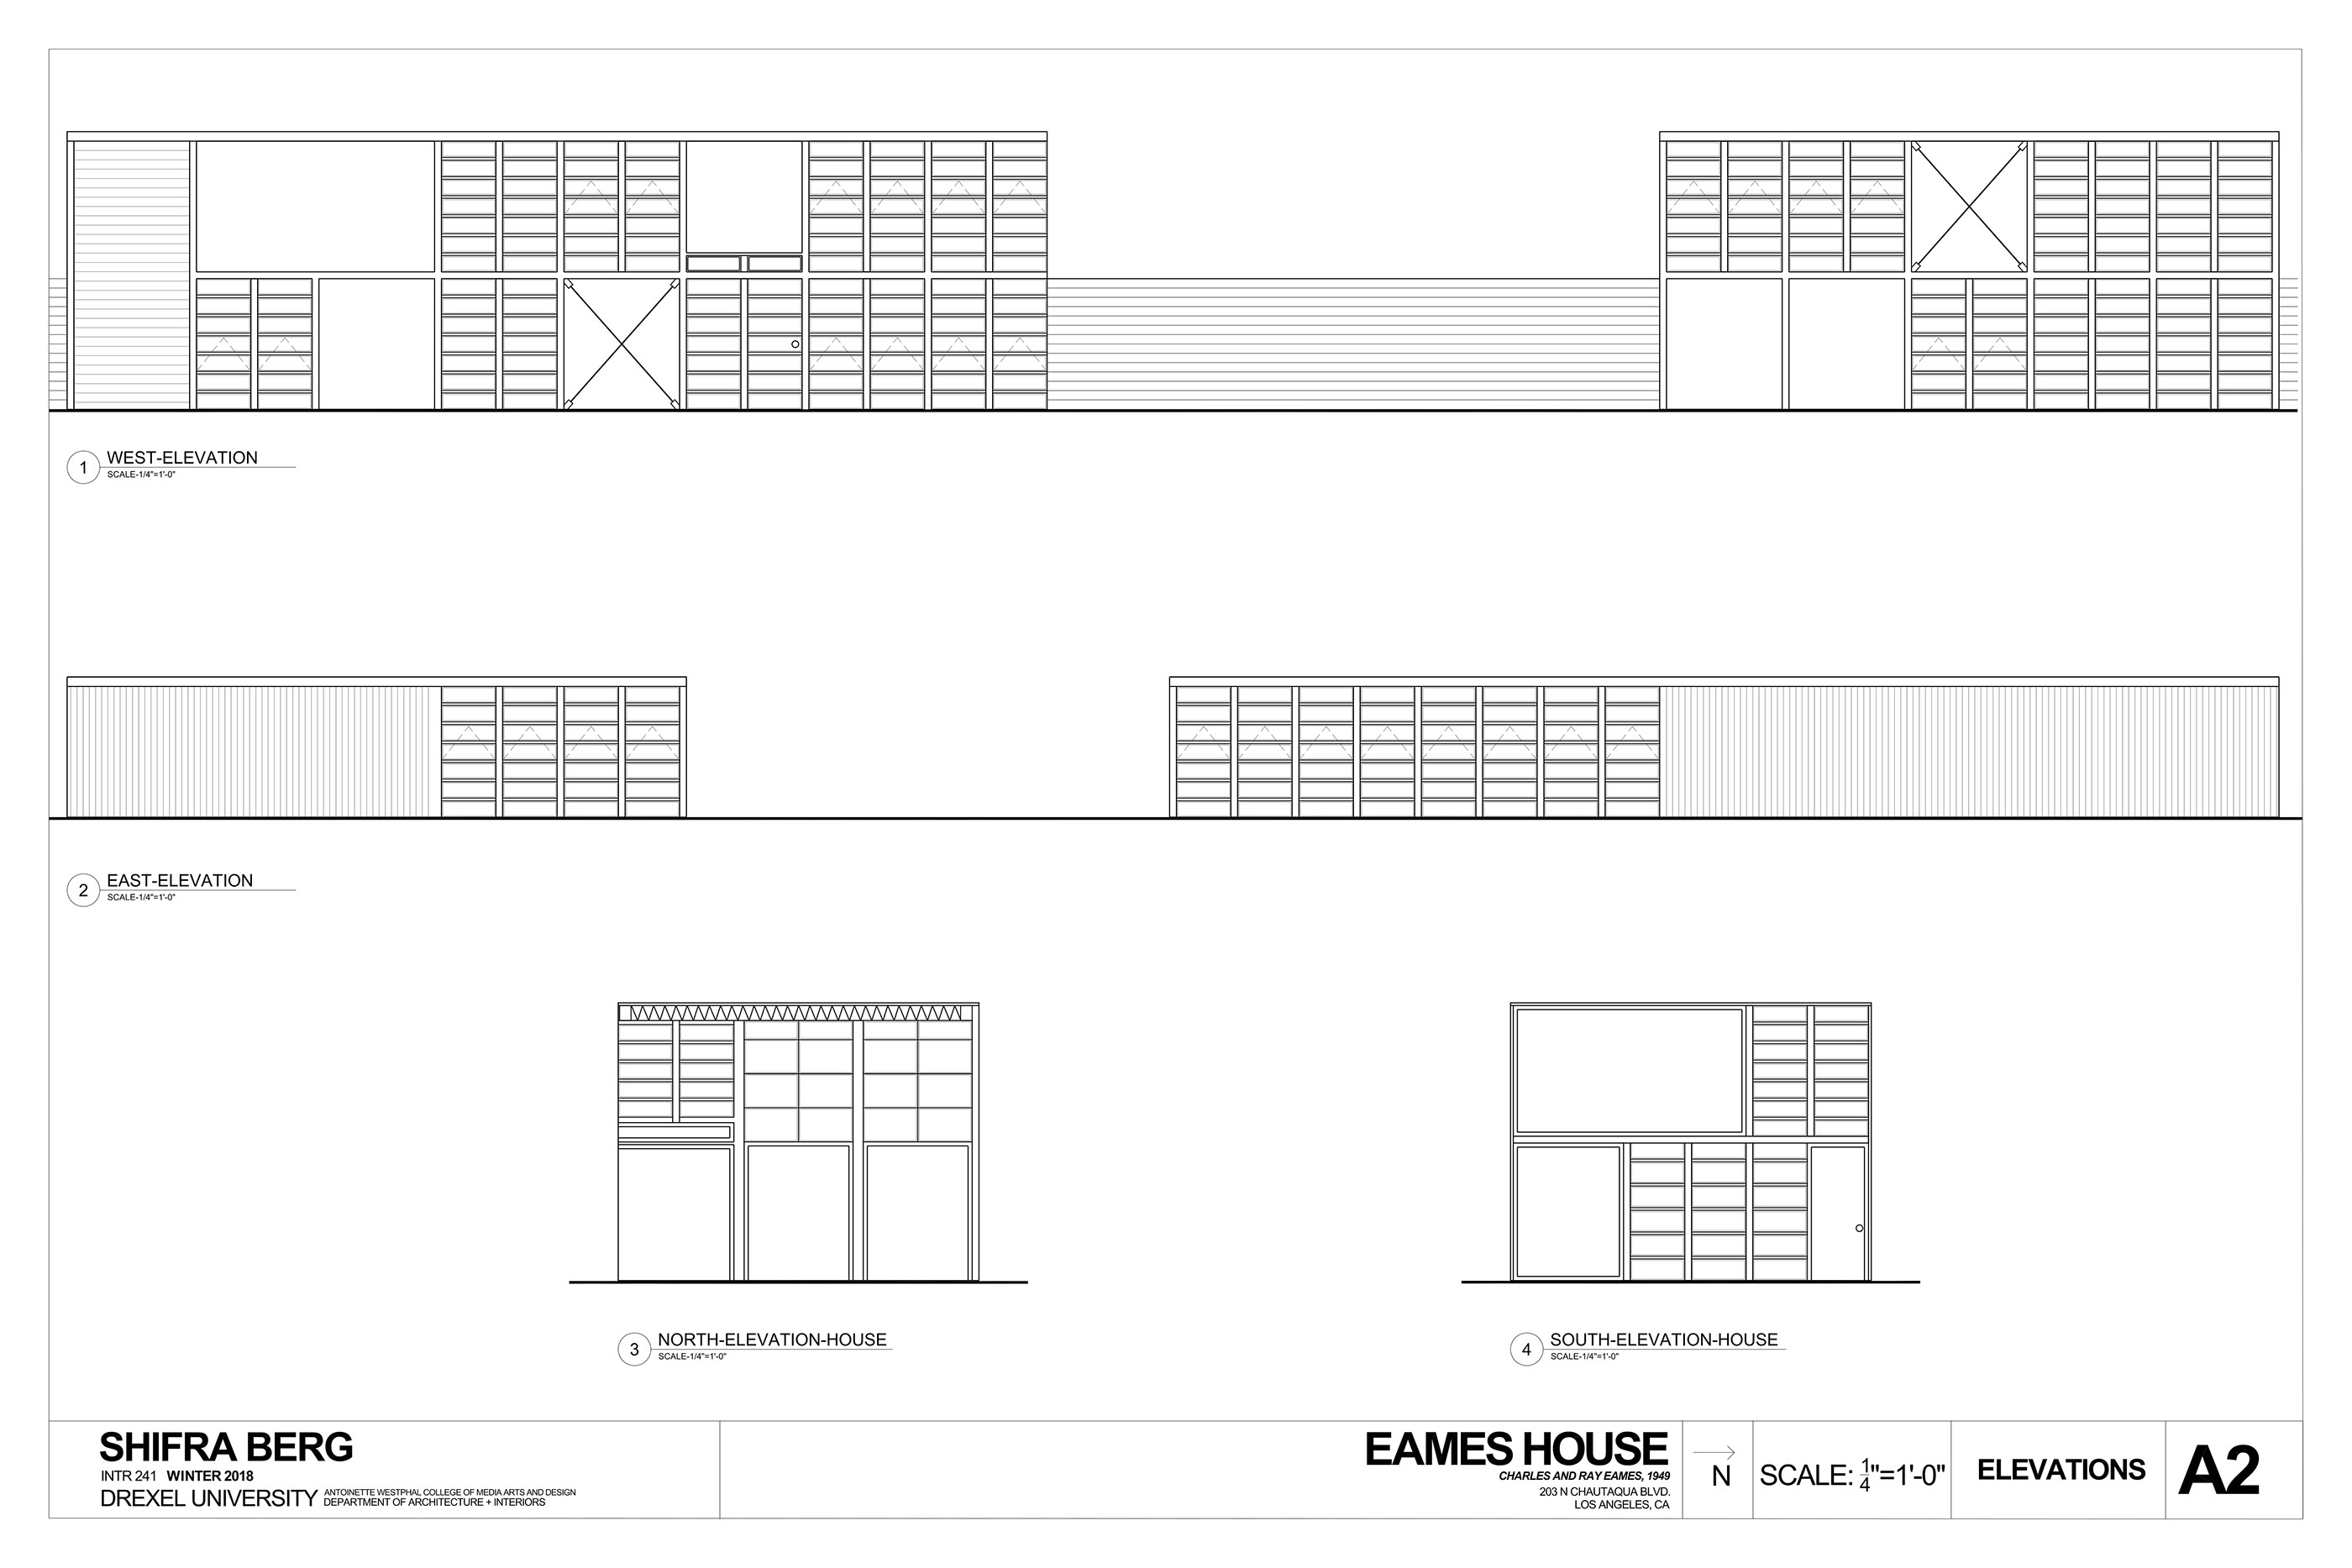 52AD8 Eames House Cad Drawings On Behance | Wiring Resources on dimensions for house plans, roof for house plans, furniture for house plans,